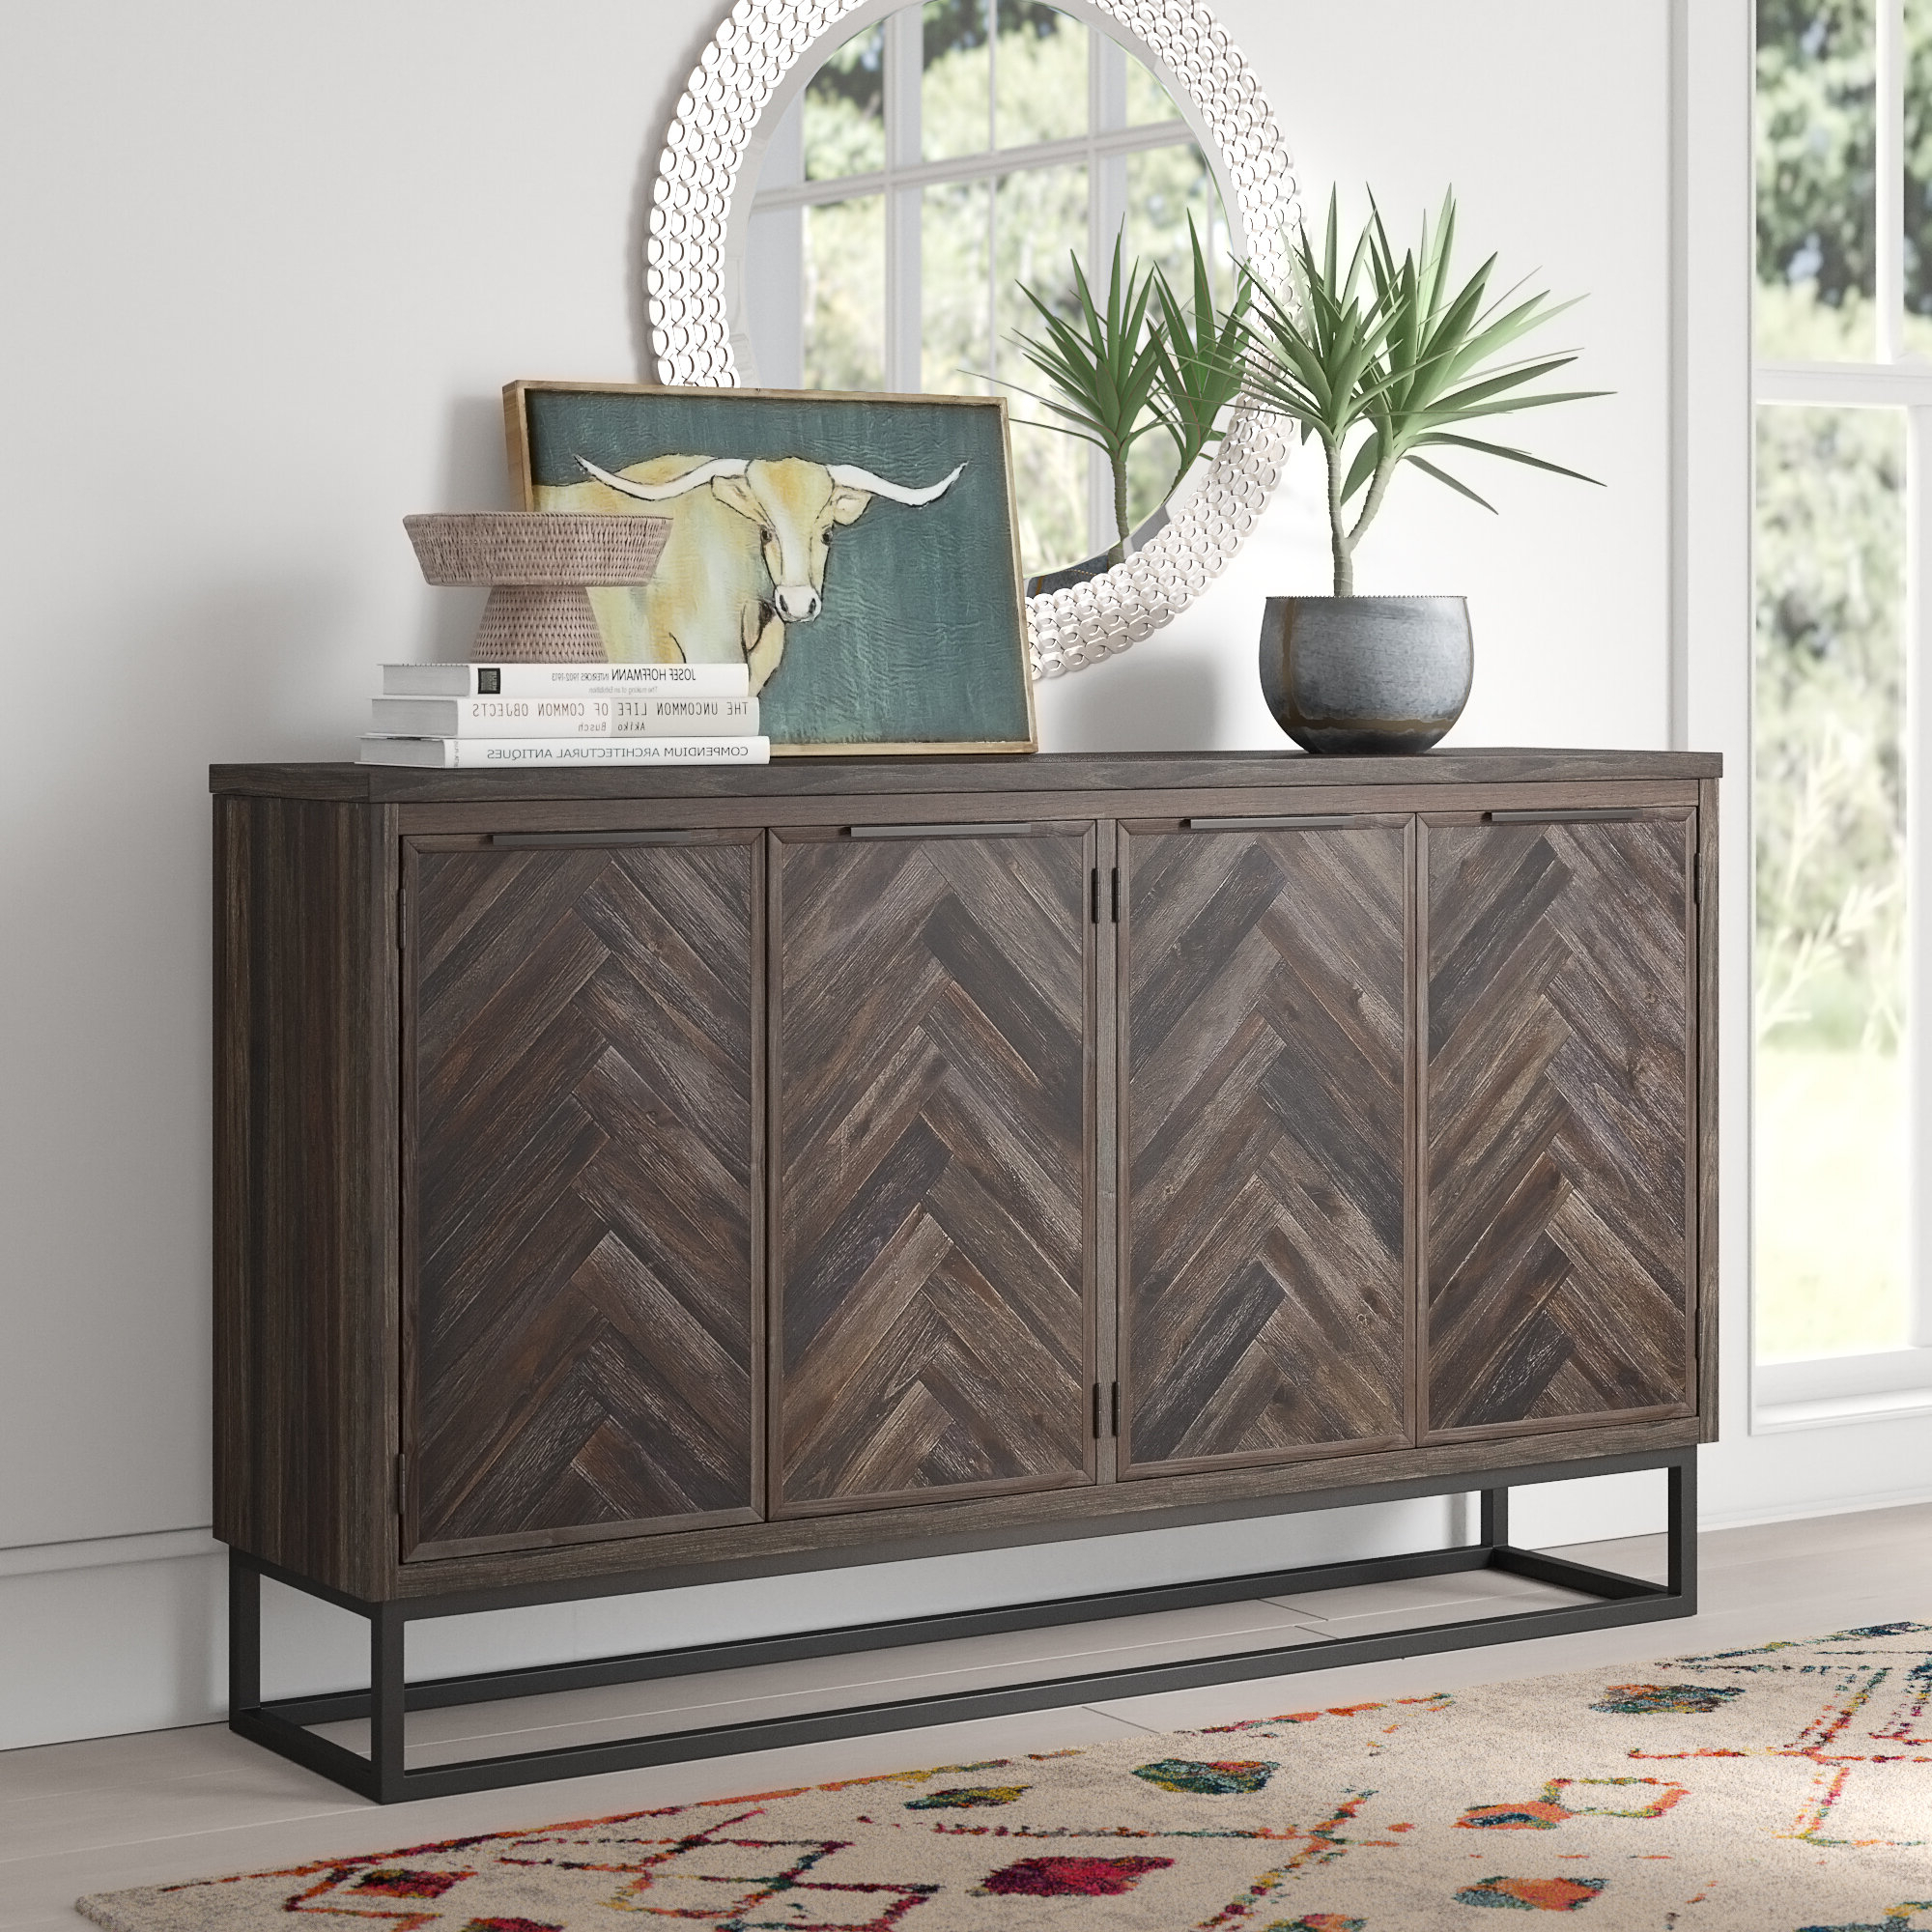 Wrought Iron Credenza | Wayfair With Regard To Upper Stanton Sideboards (View 12 of 20)